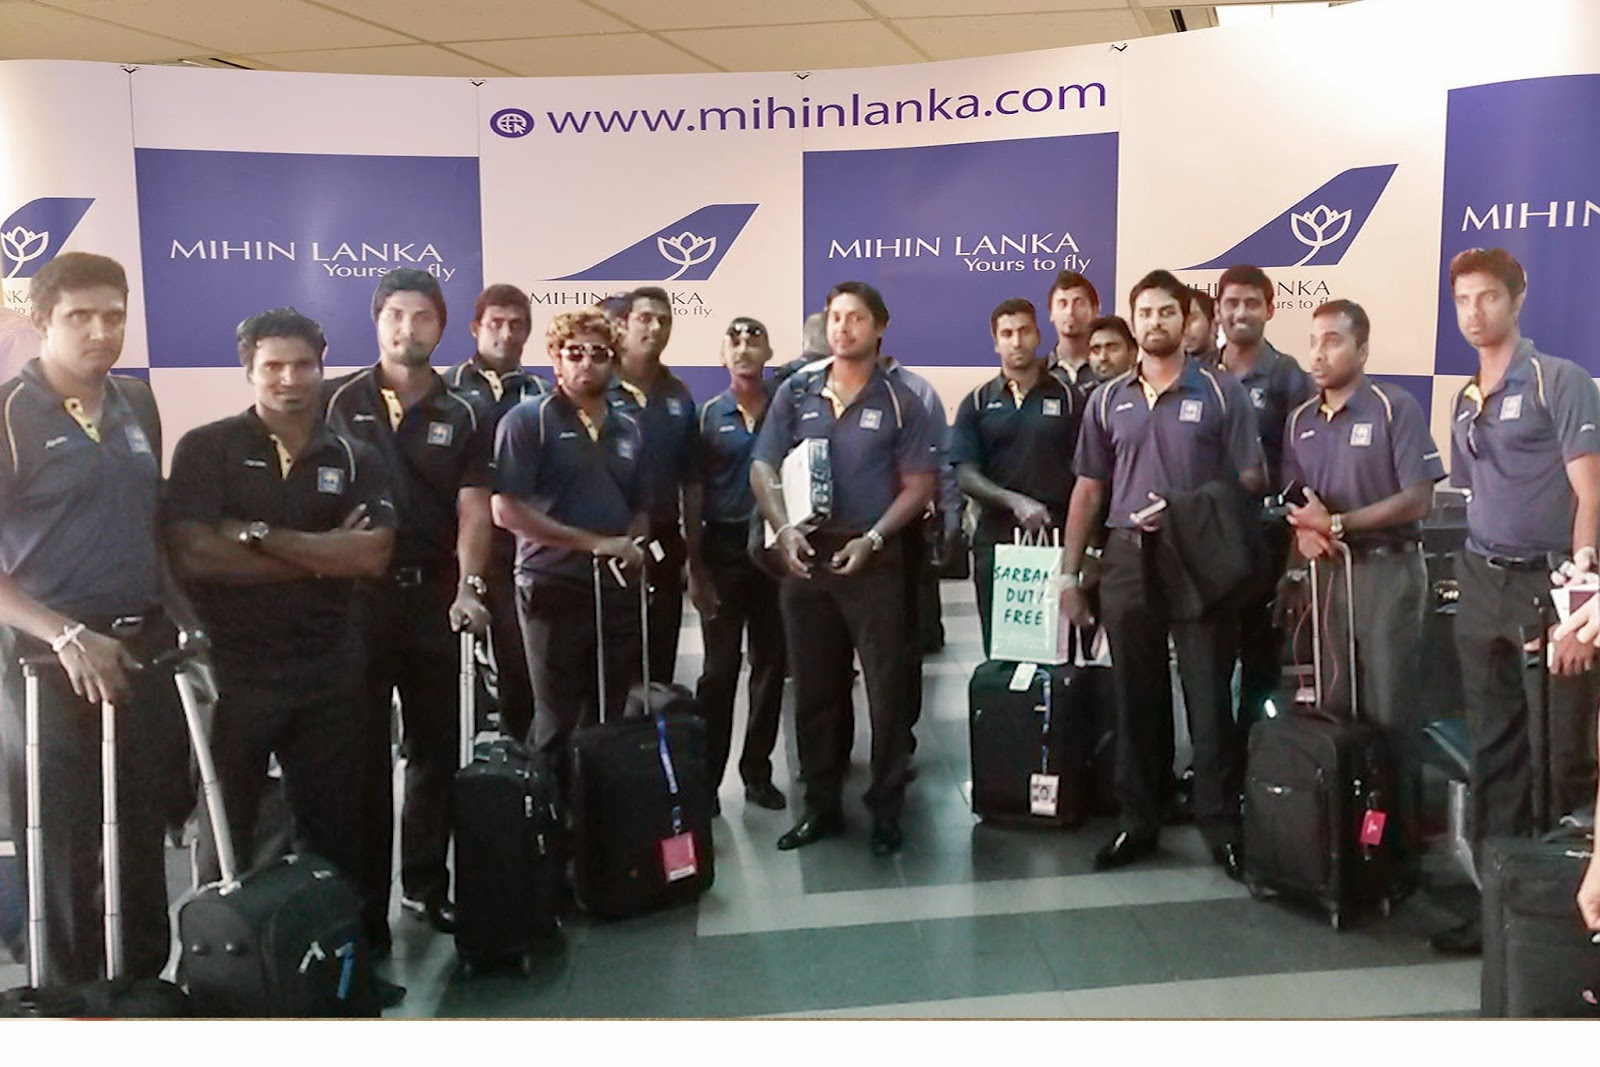 The Sri Lankan Cricket team, after winning the Asia Cup tournament, ready to fly back to Sri Lanka.